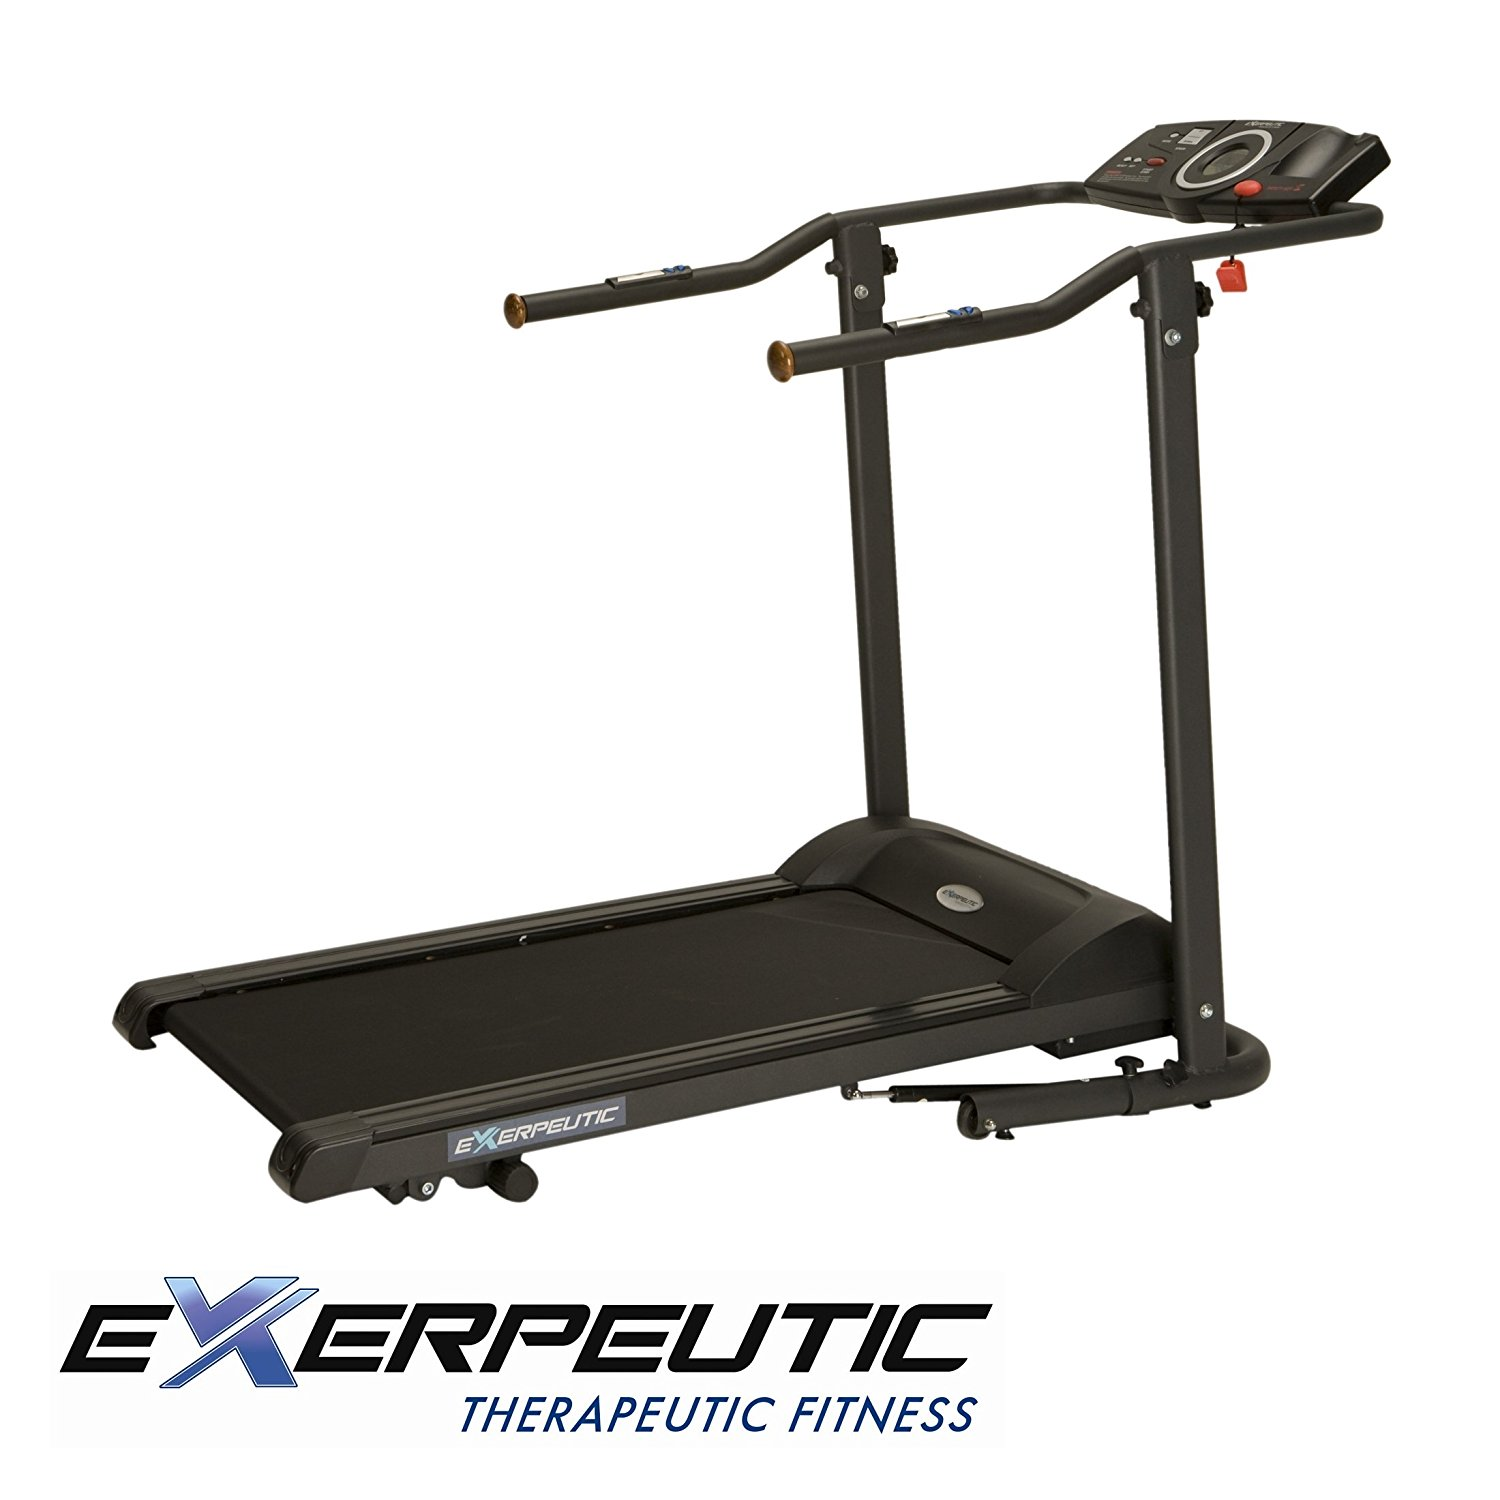 Exerpeutic TF1000 Walk to Fitness Electric Treadmill Review